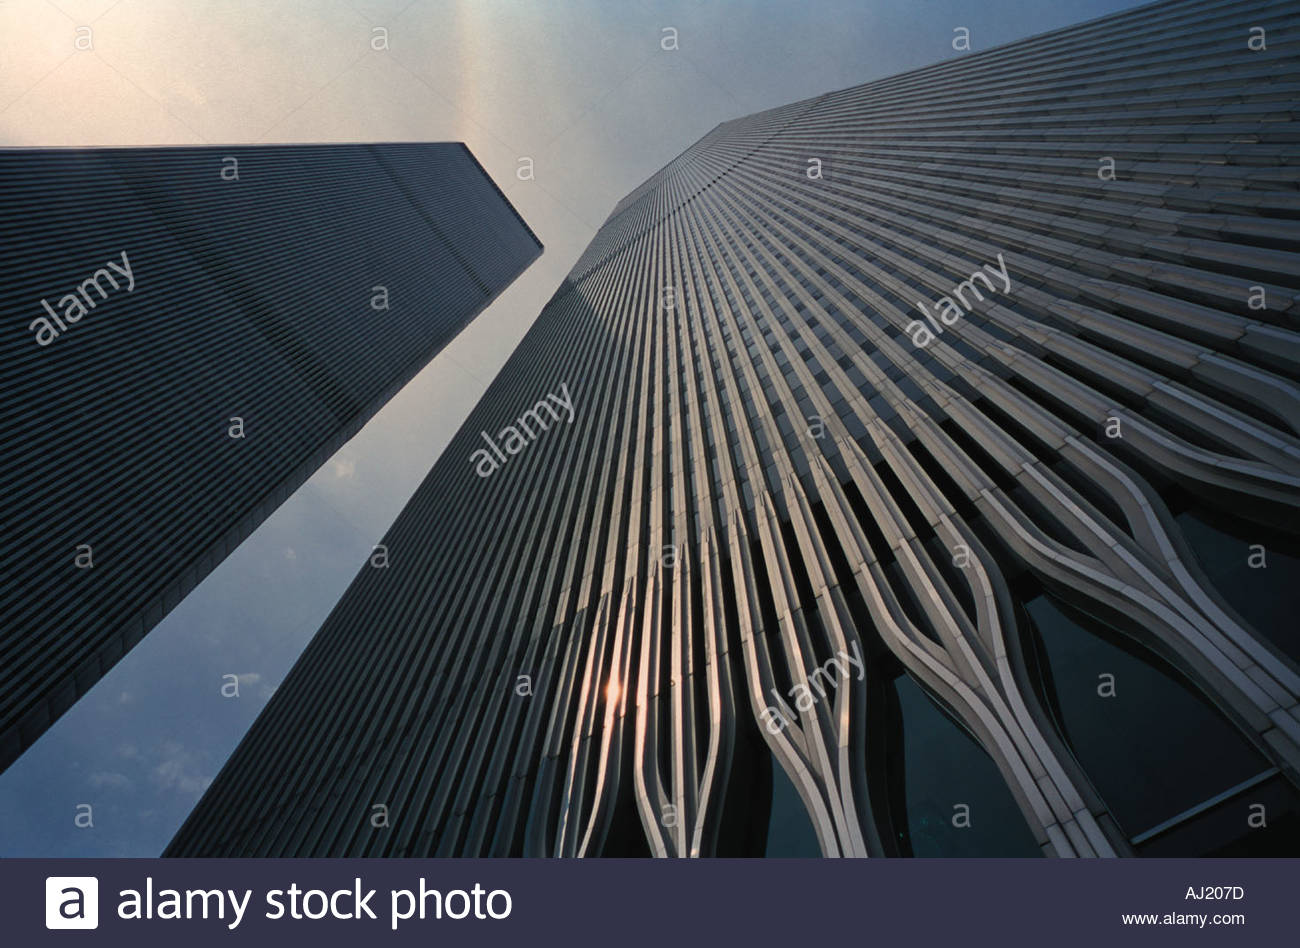 Towers of World Trade Center at an upward view - Stock Image